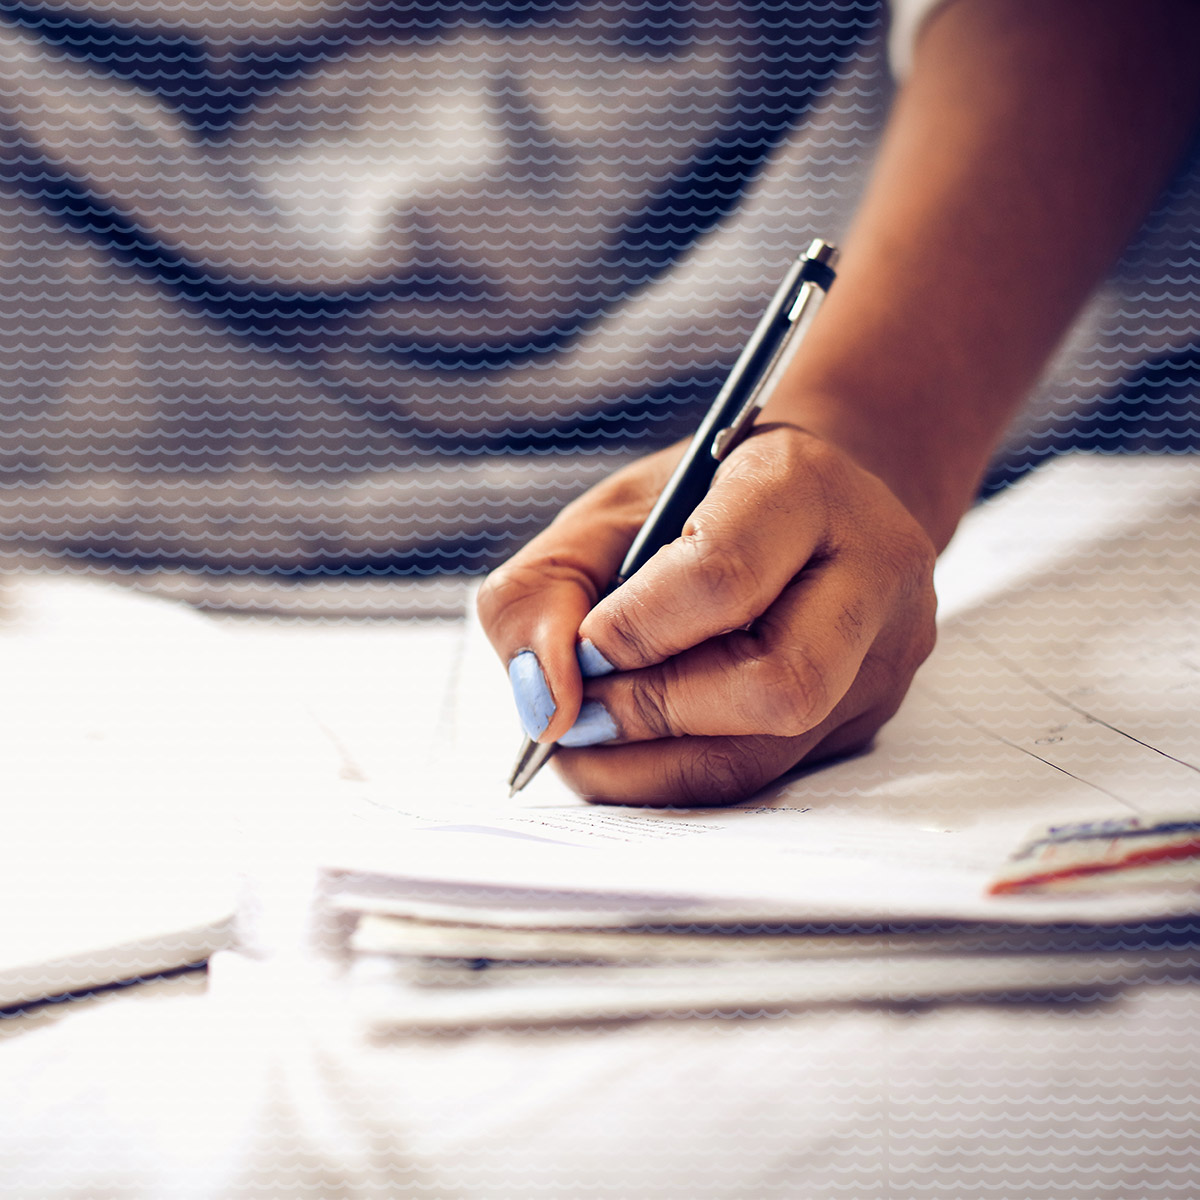 MDs Reveal How to Craft an Excellent Residency Personal Statement_feature